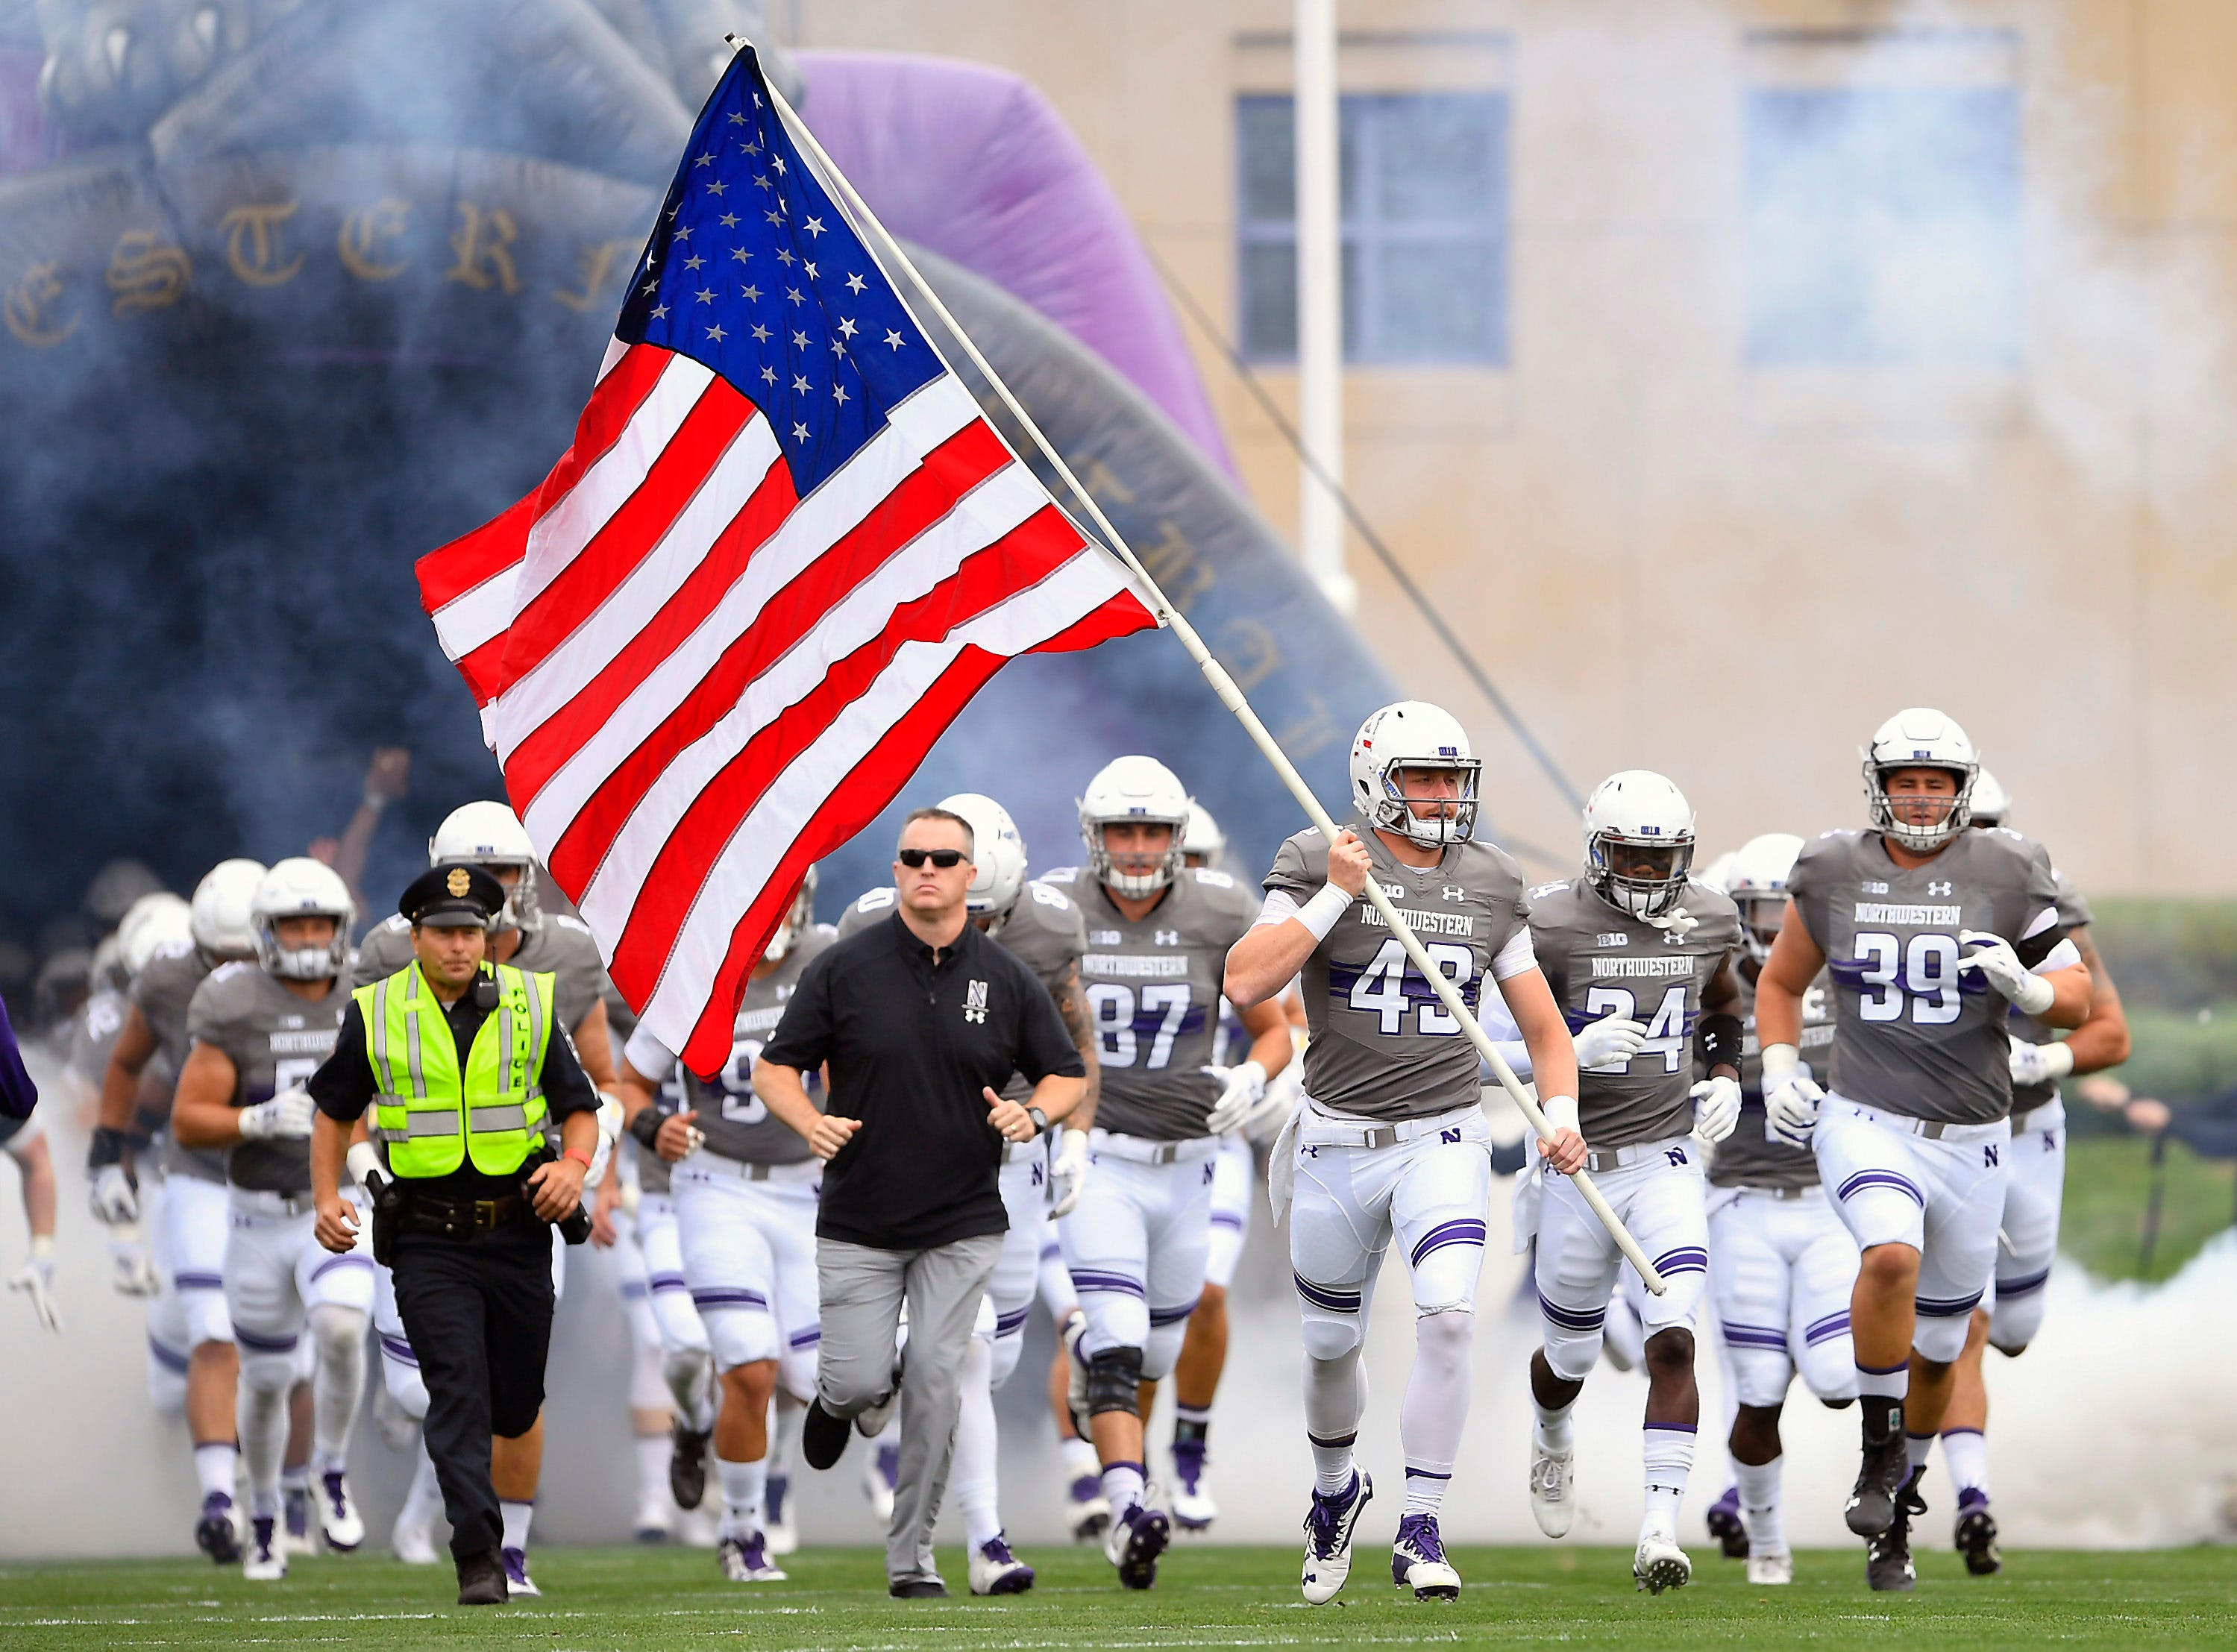 Northwestern takes the field against Duke.